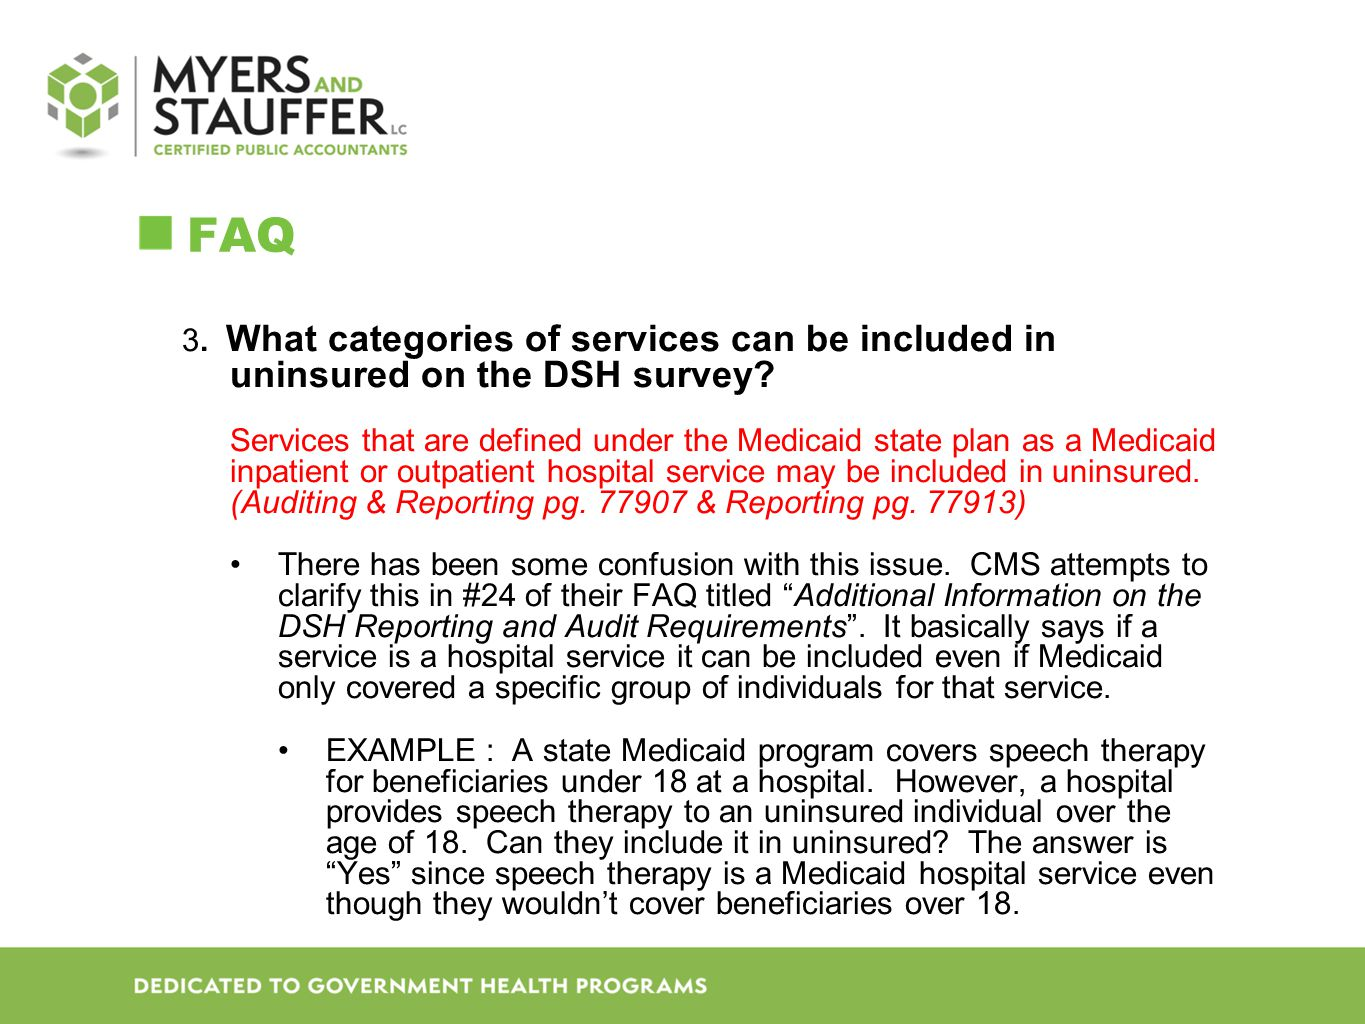 FAQ 3. What categories of services can be included in uninsured on the DSH survey